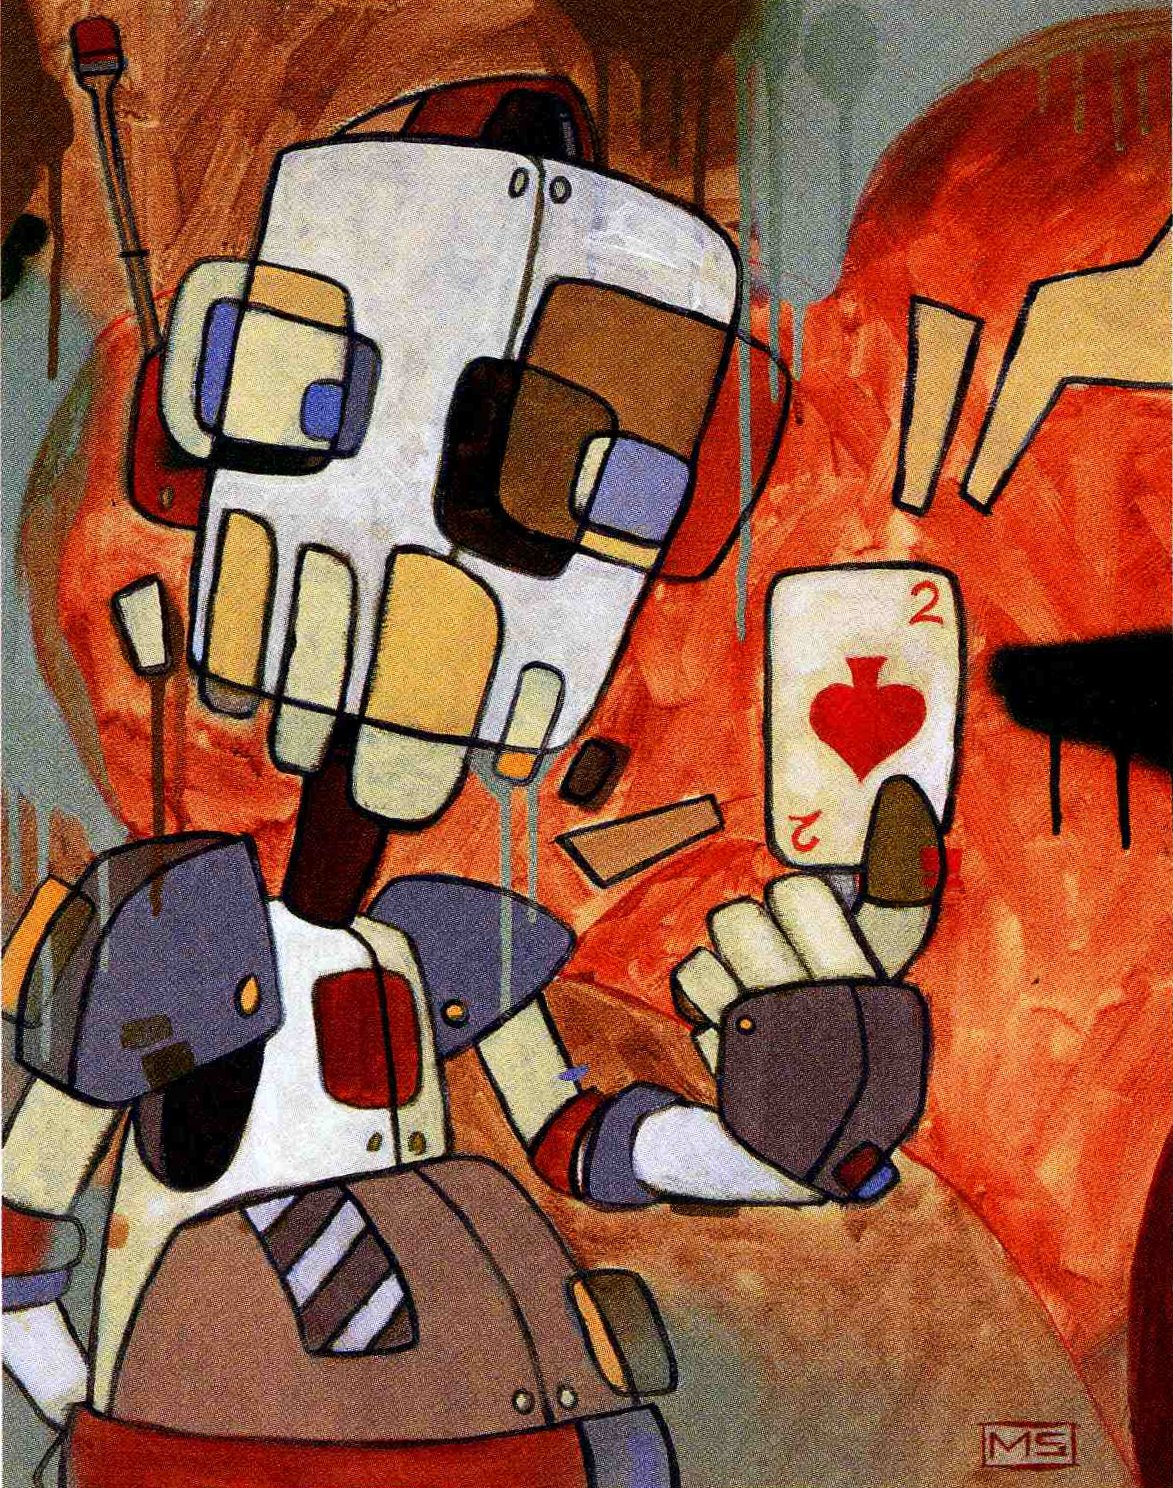 Hearts / Clubs, peinture tirée de Back de Diamonds, Spades, Hearts & Clubs' par Mike Shinoda